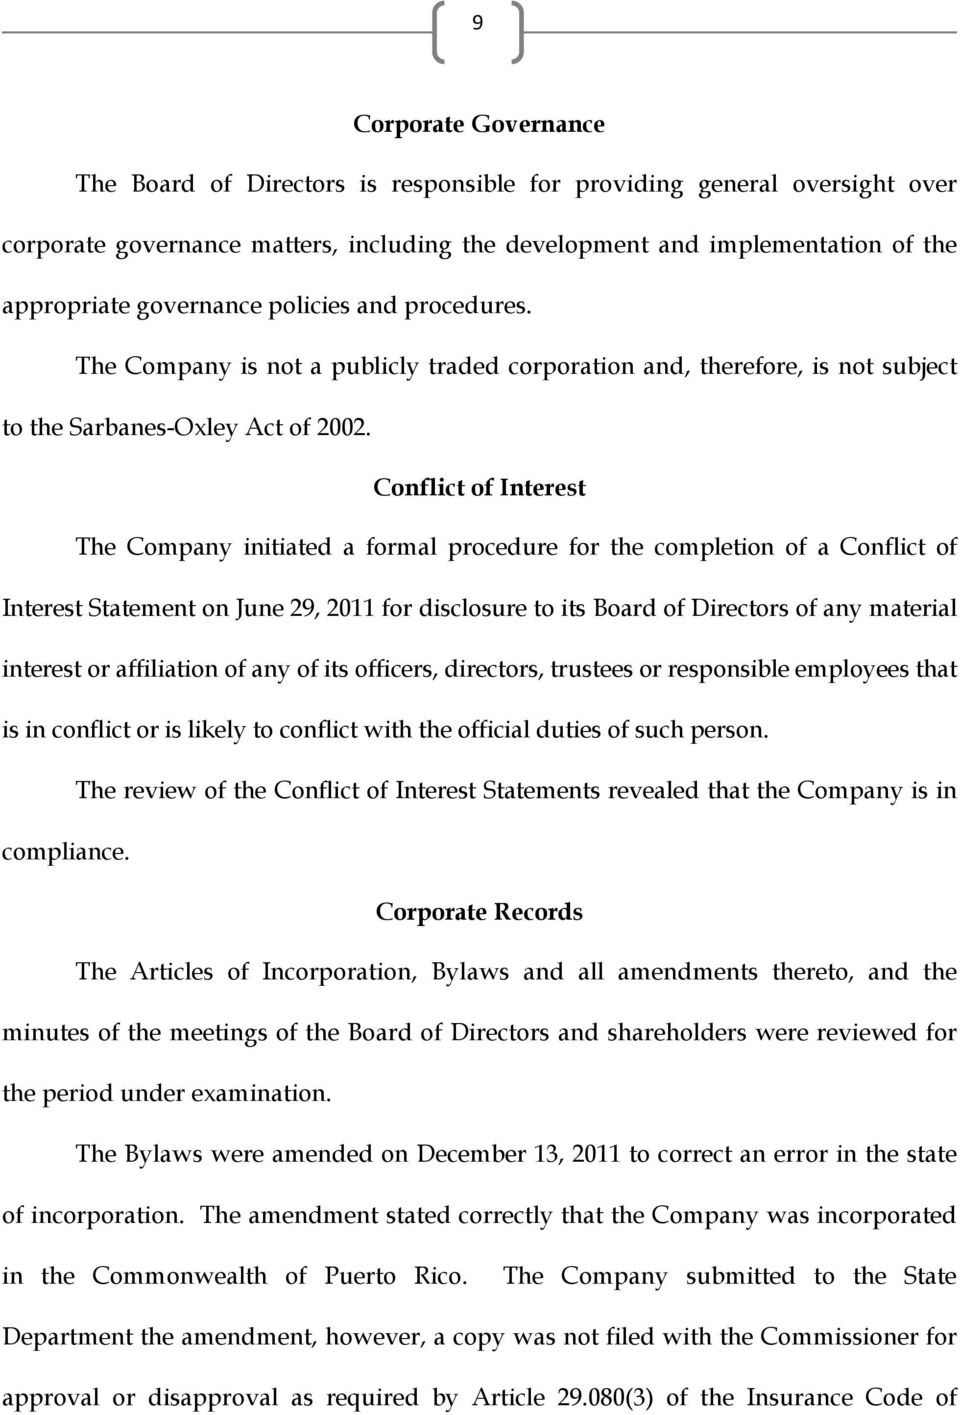 Conflict of Interest The Company initiated a formal procedure for the completion of a Conflict of Interest Statement on June 29, 2011 for disclosure to its Board of Directors of any material interest